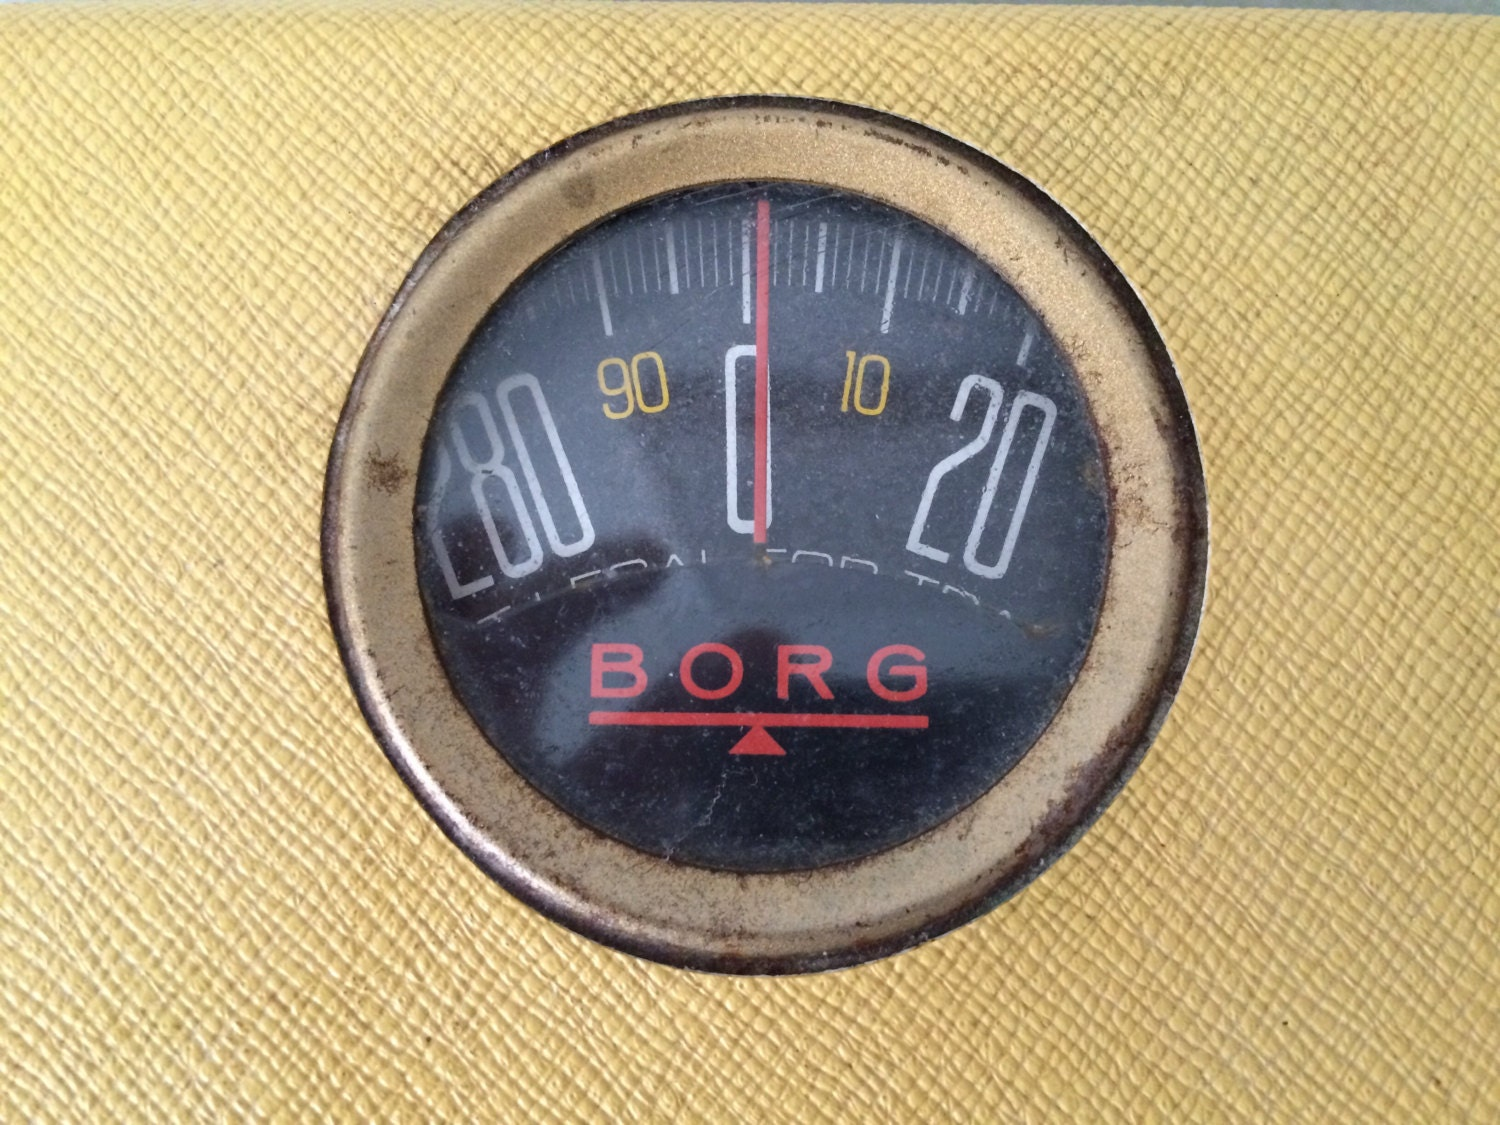 Borg bathroom scale - Add It To Your Favorites To Revisit It Later